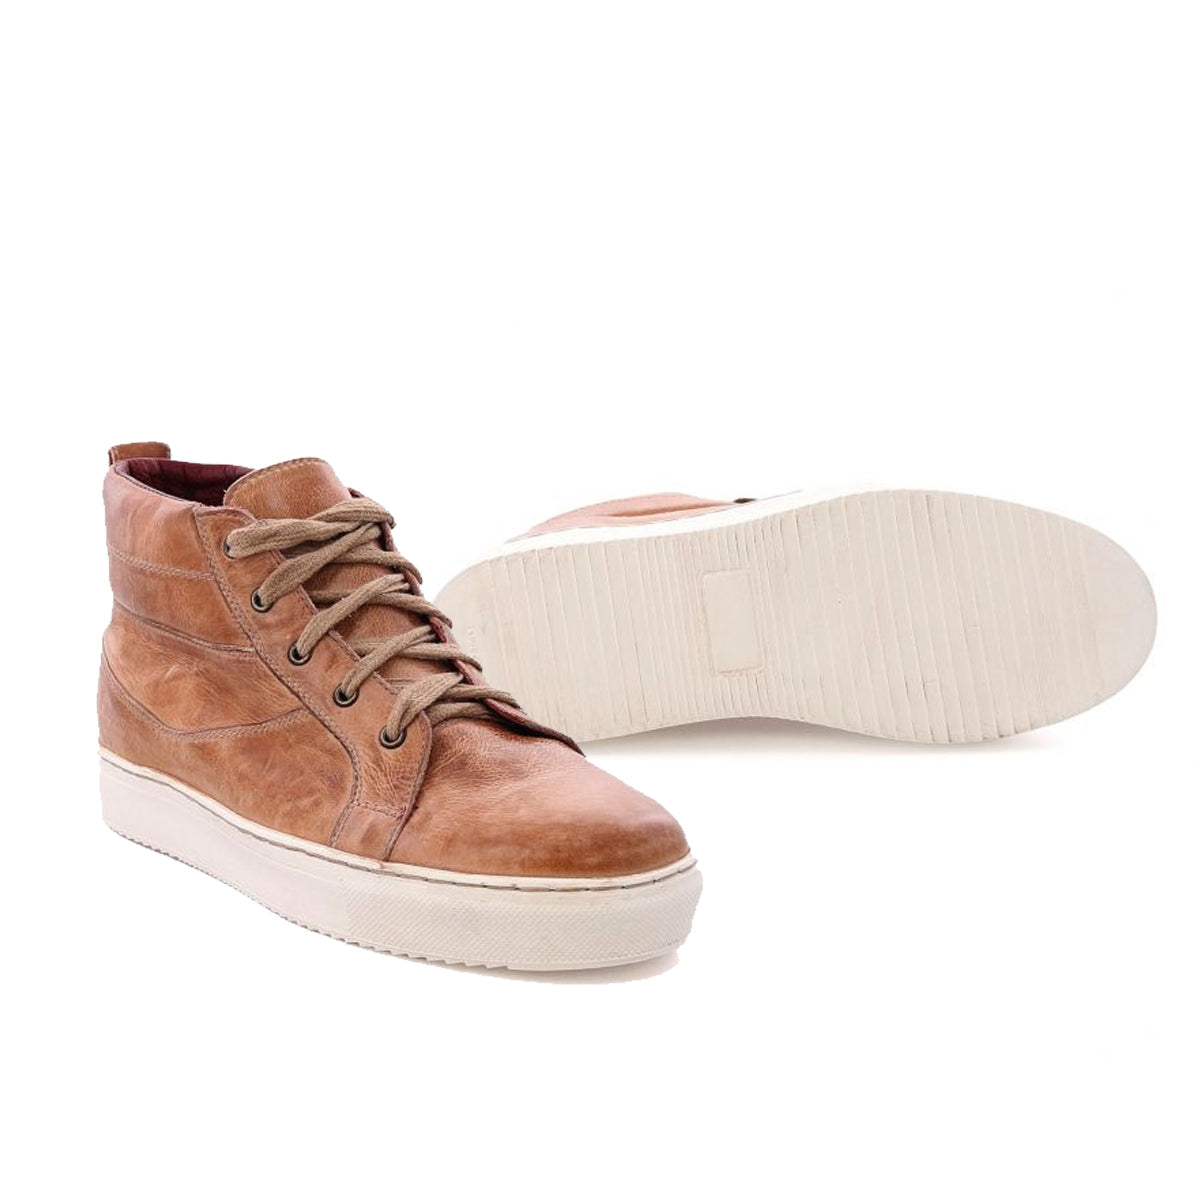 BedStu Women's Rossela High Top Sneakers - Tan Rustic Tremolo